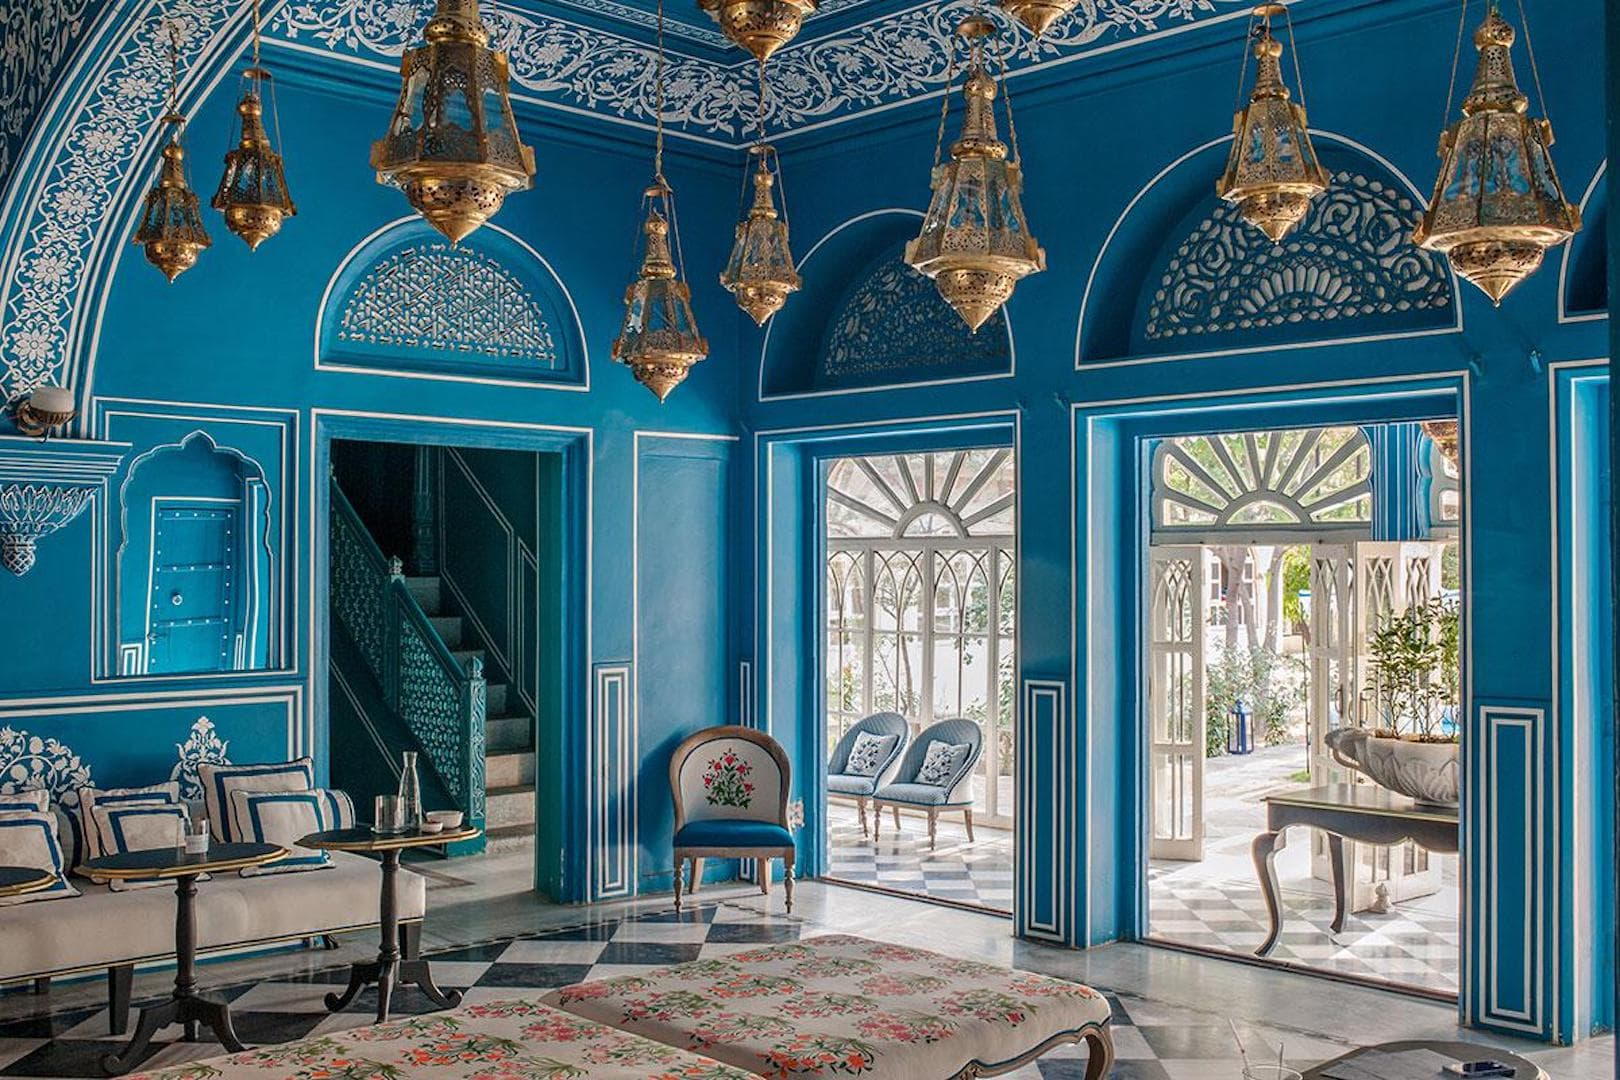 Bar Palladio Jaipur